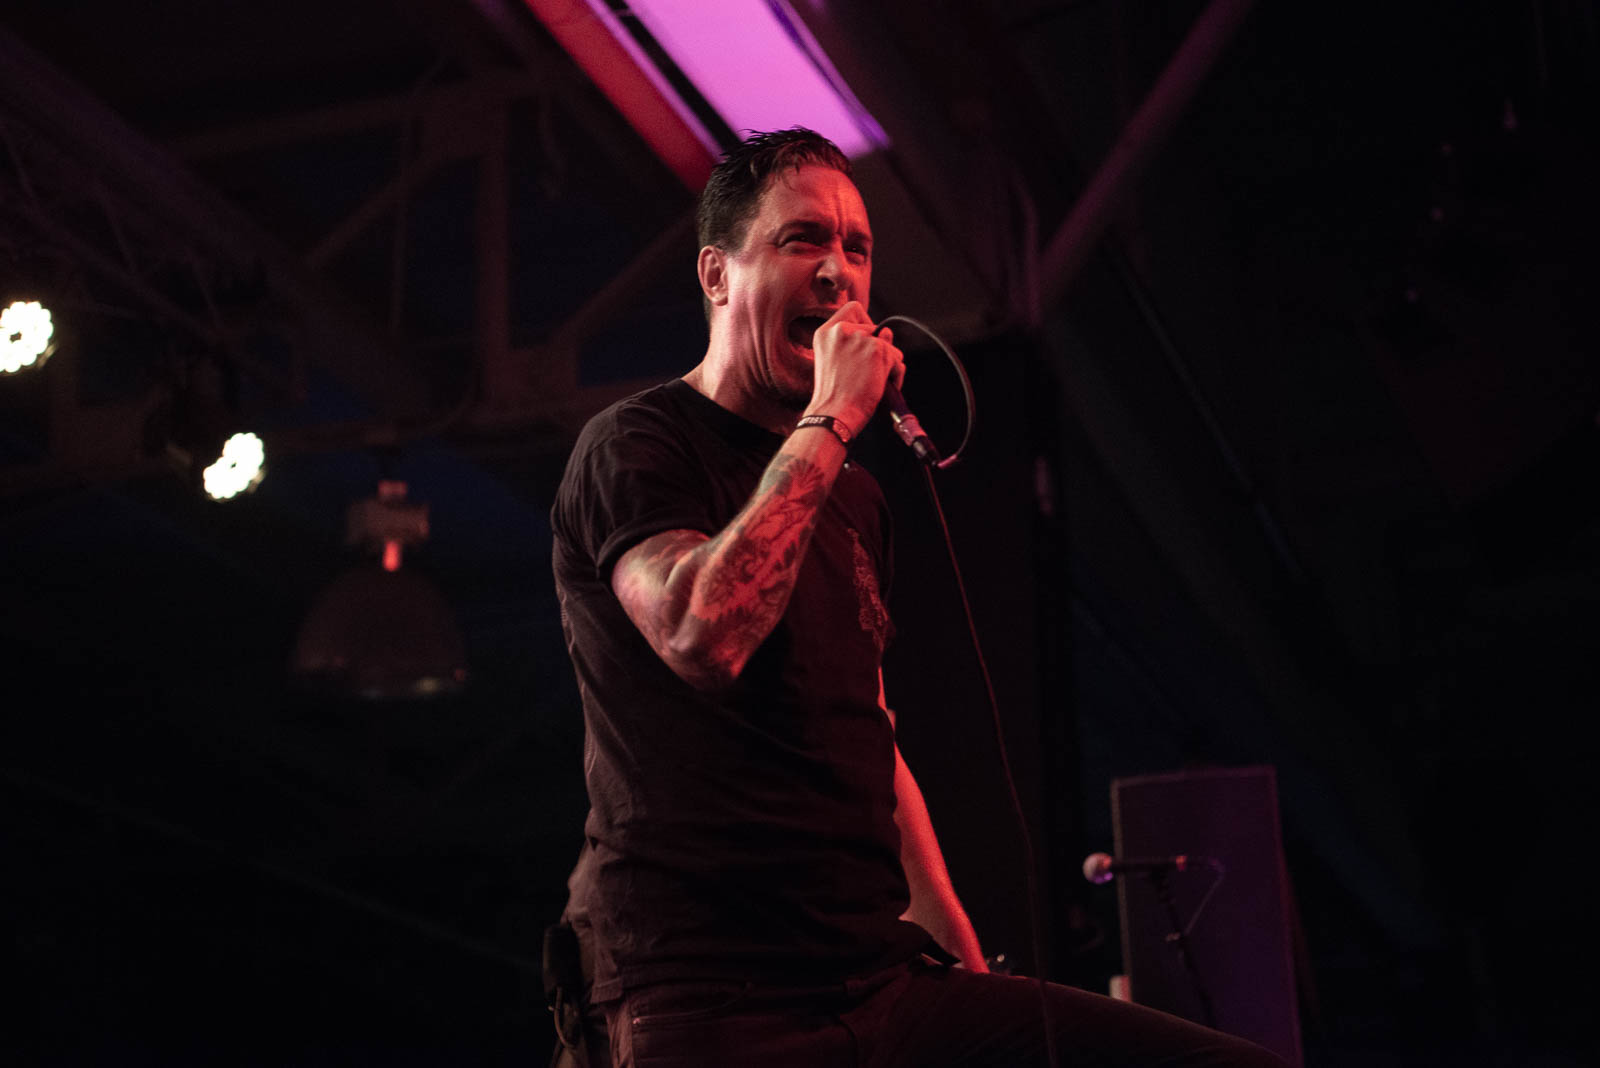 Sick of it All at House of Vans